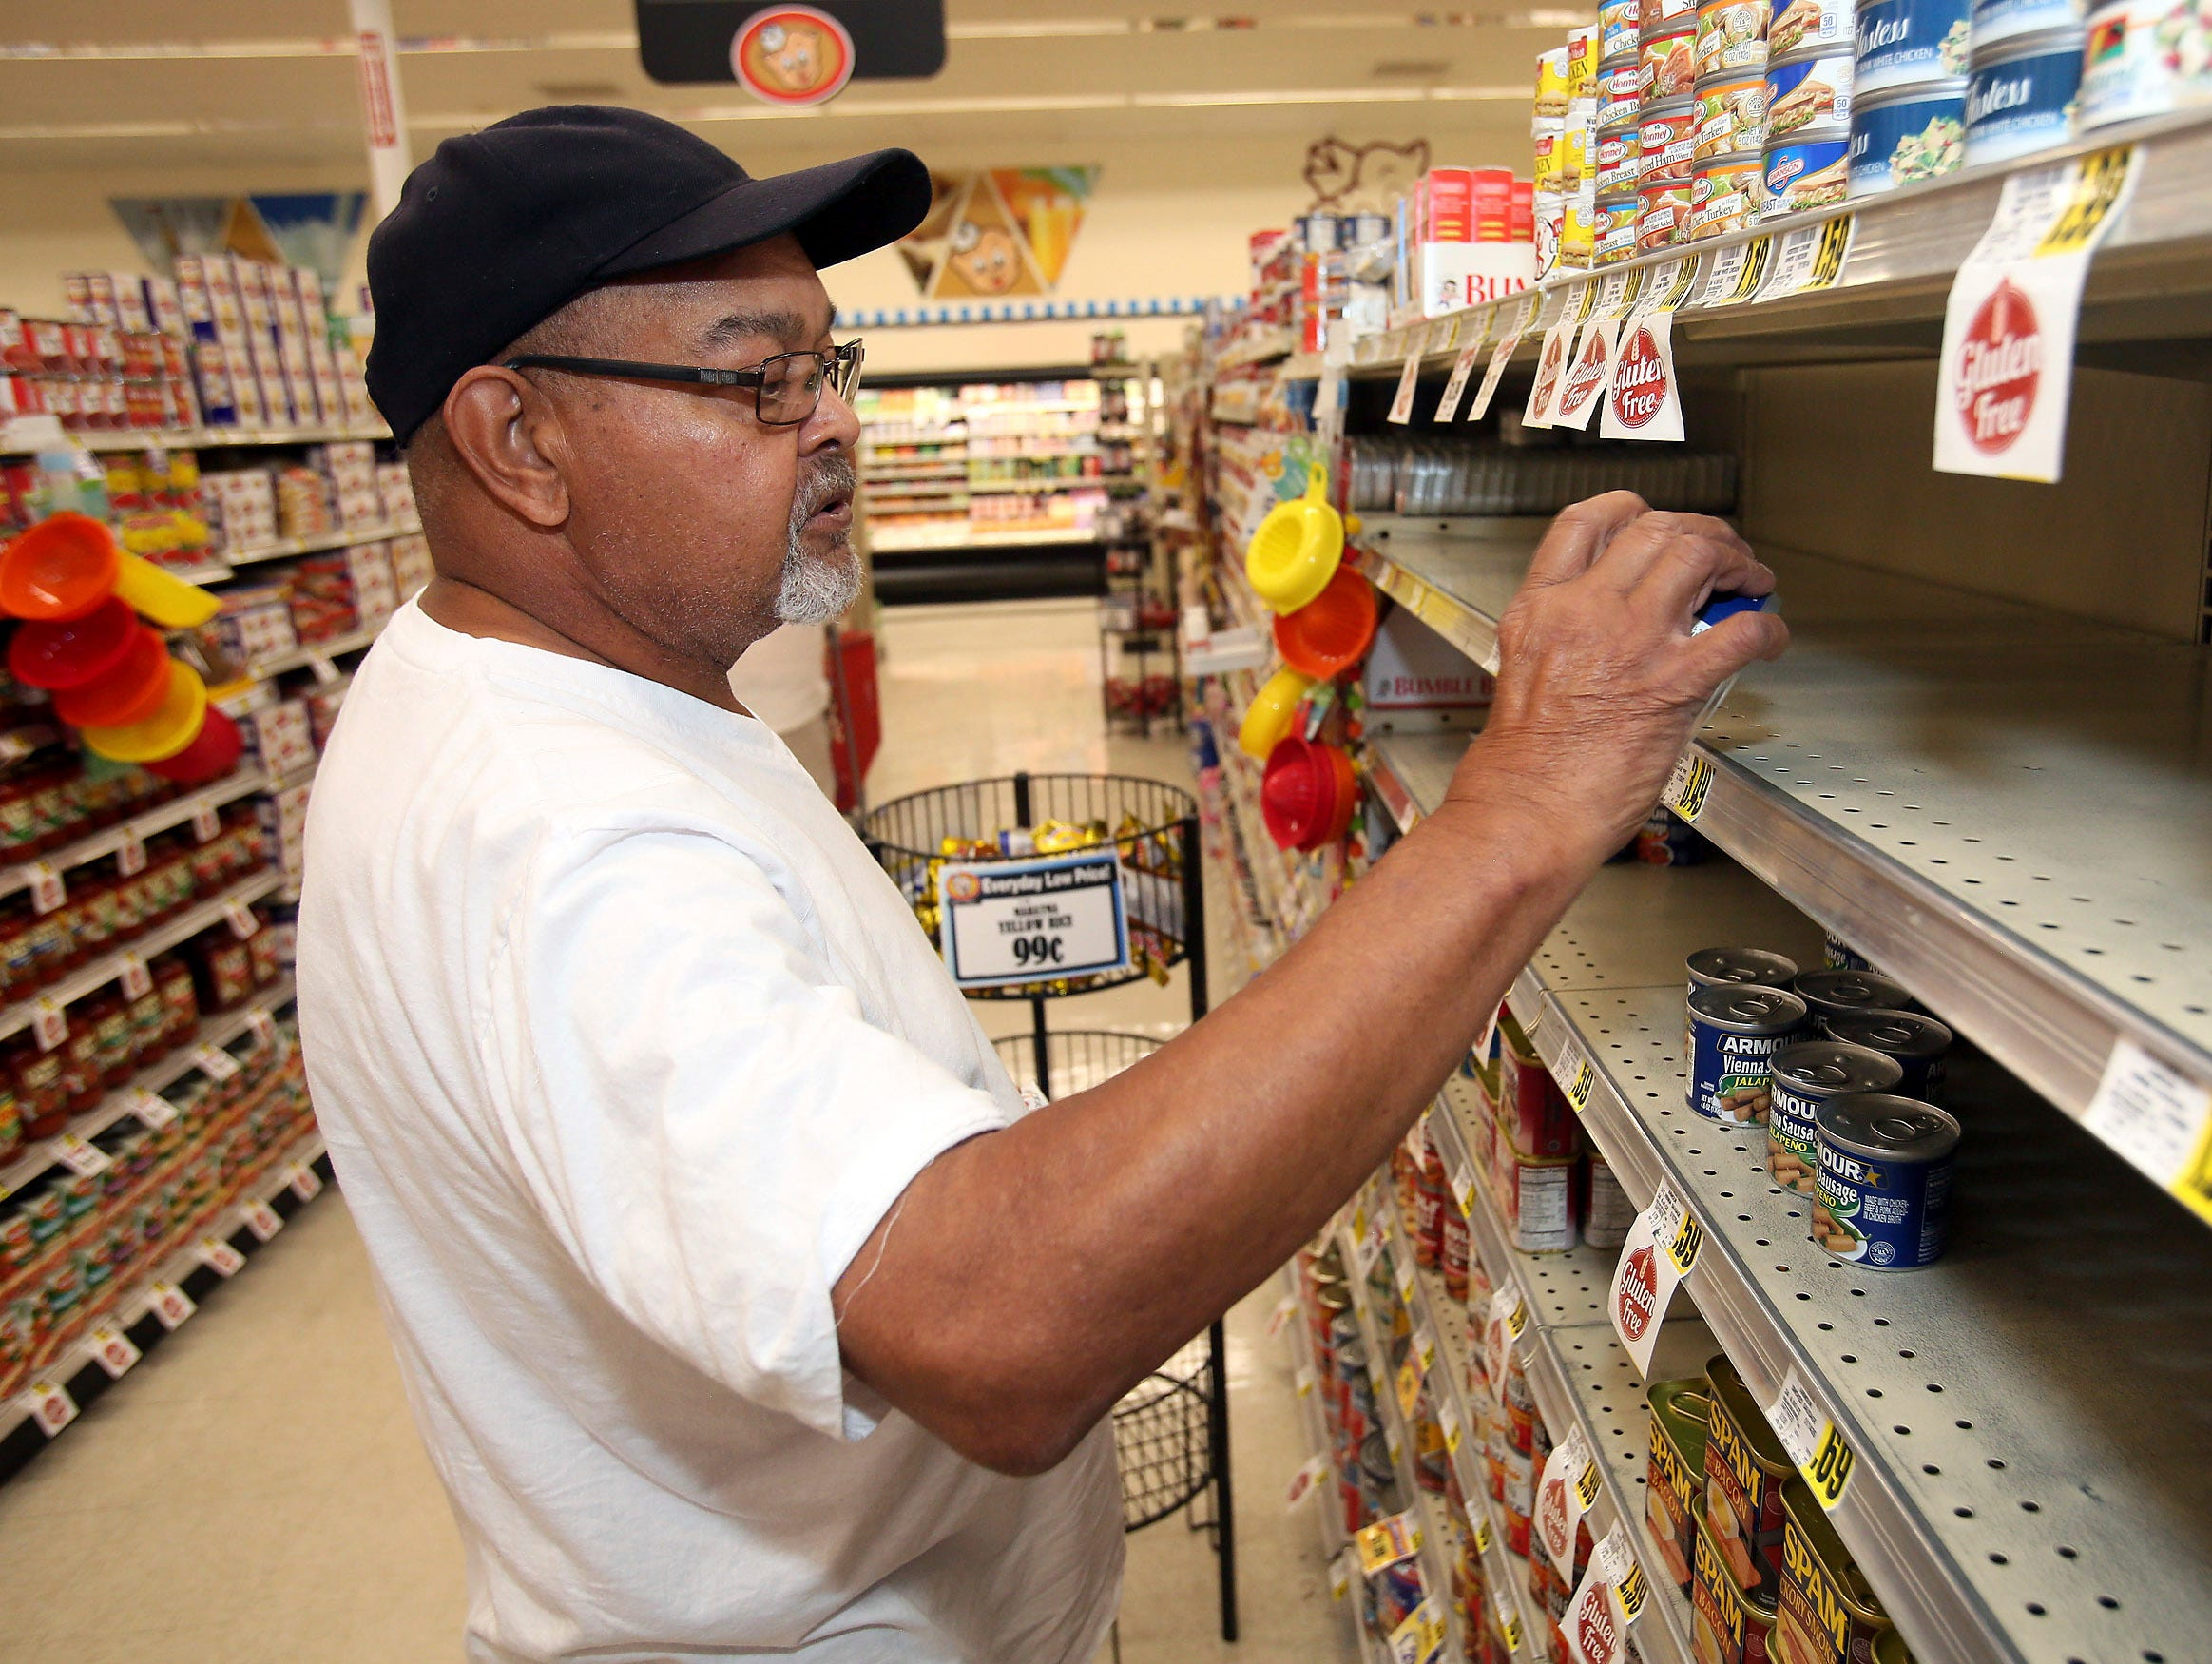 Larry Lynch selects a can of Armour Vienna Bites while grocery shopping in preparation for Hurricane Florence on Tuesday, Sept. 11, 2018, at the Piggly Wiggly store on West Thomas Street in Rocky Mount, N.C.